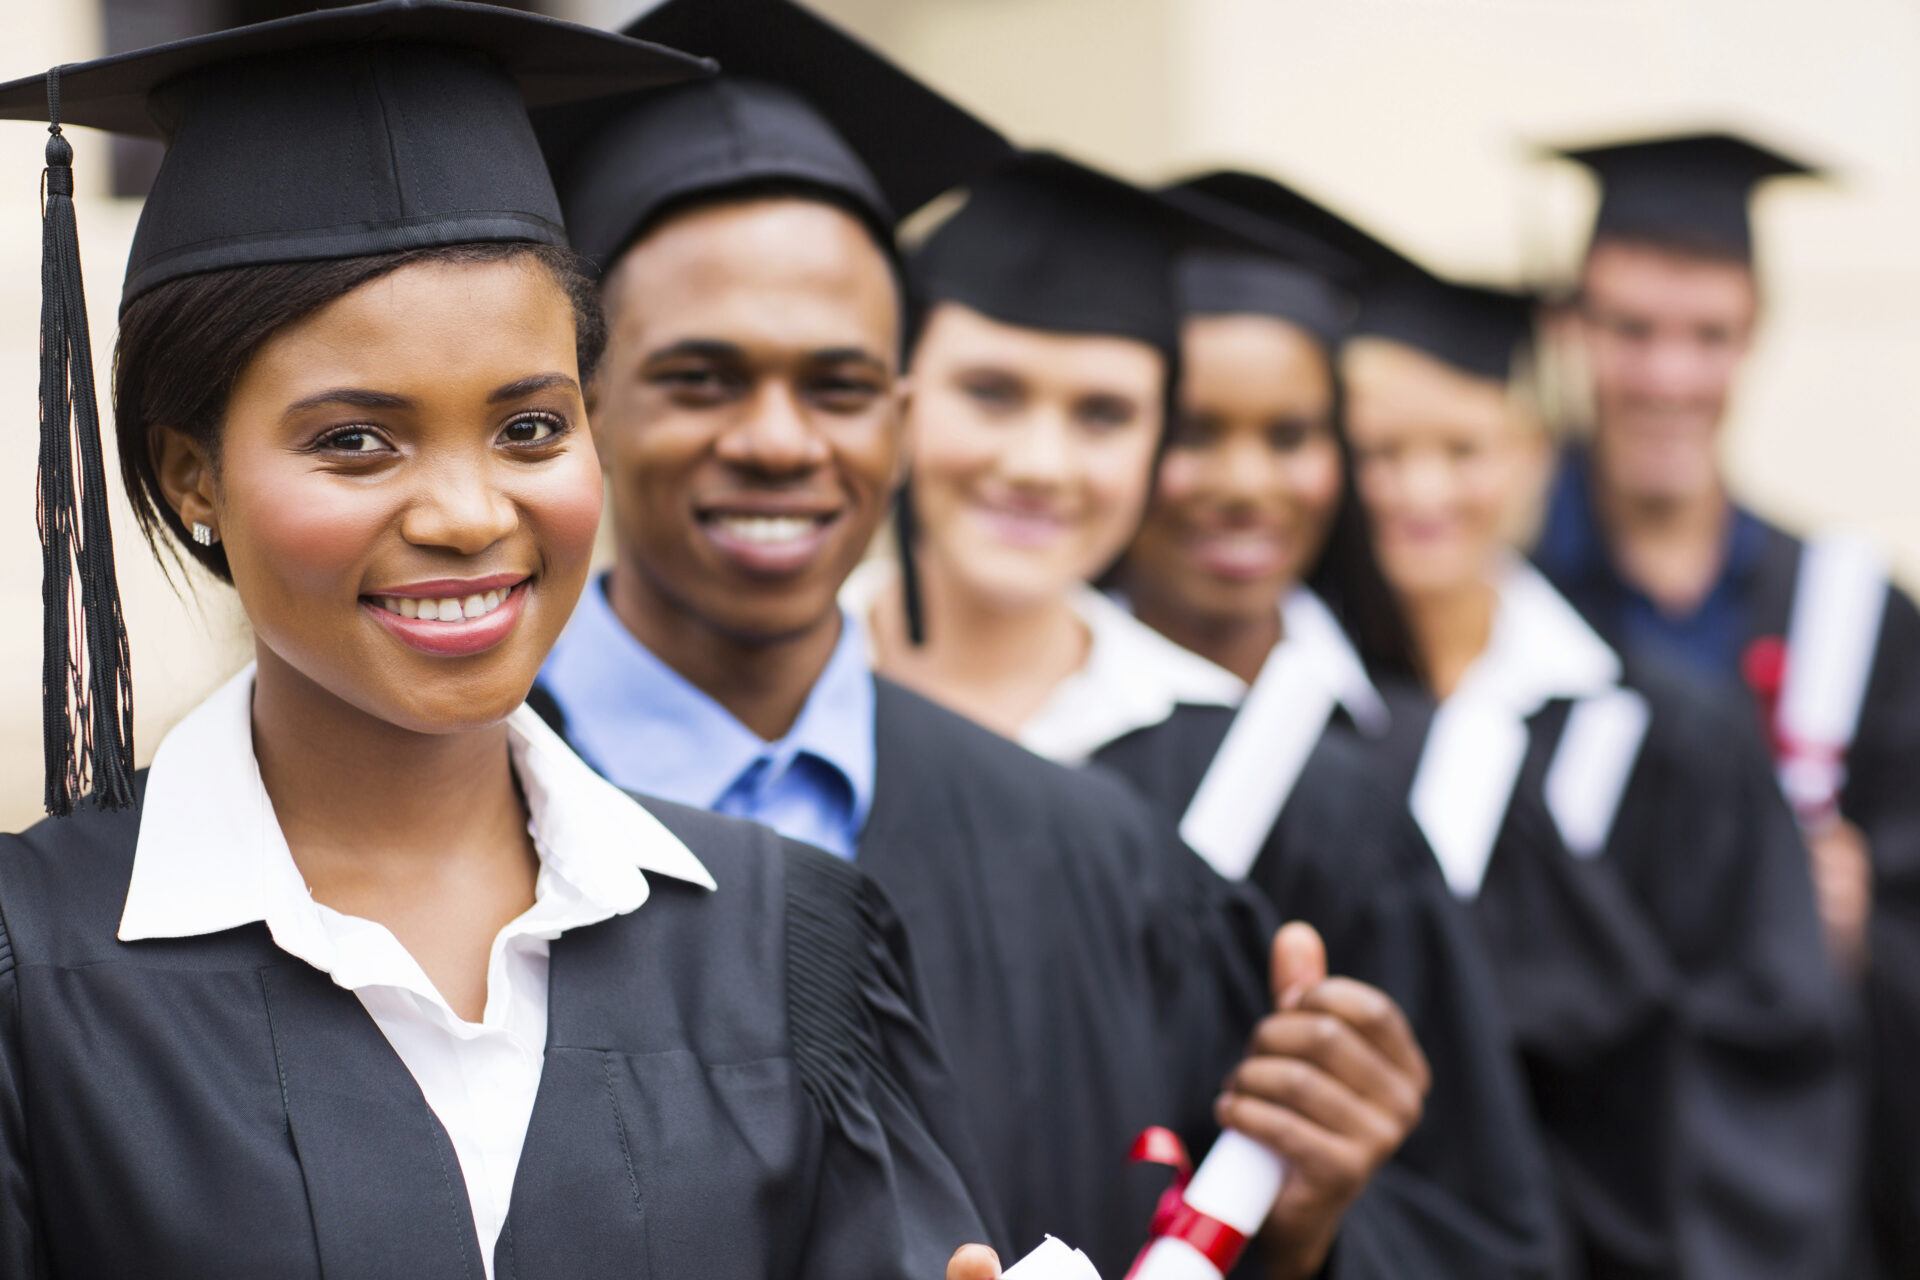 A group of students receiving college degrees.